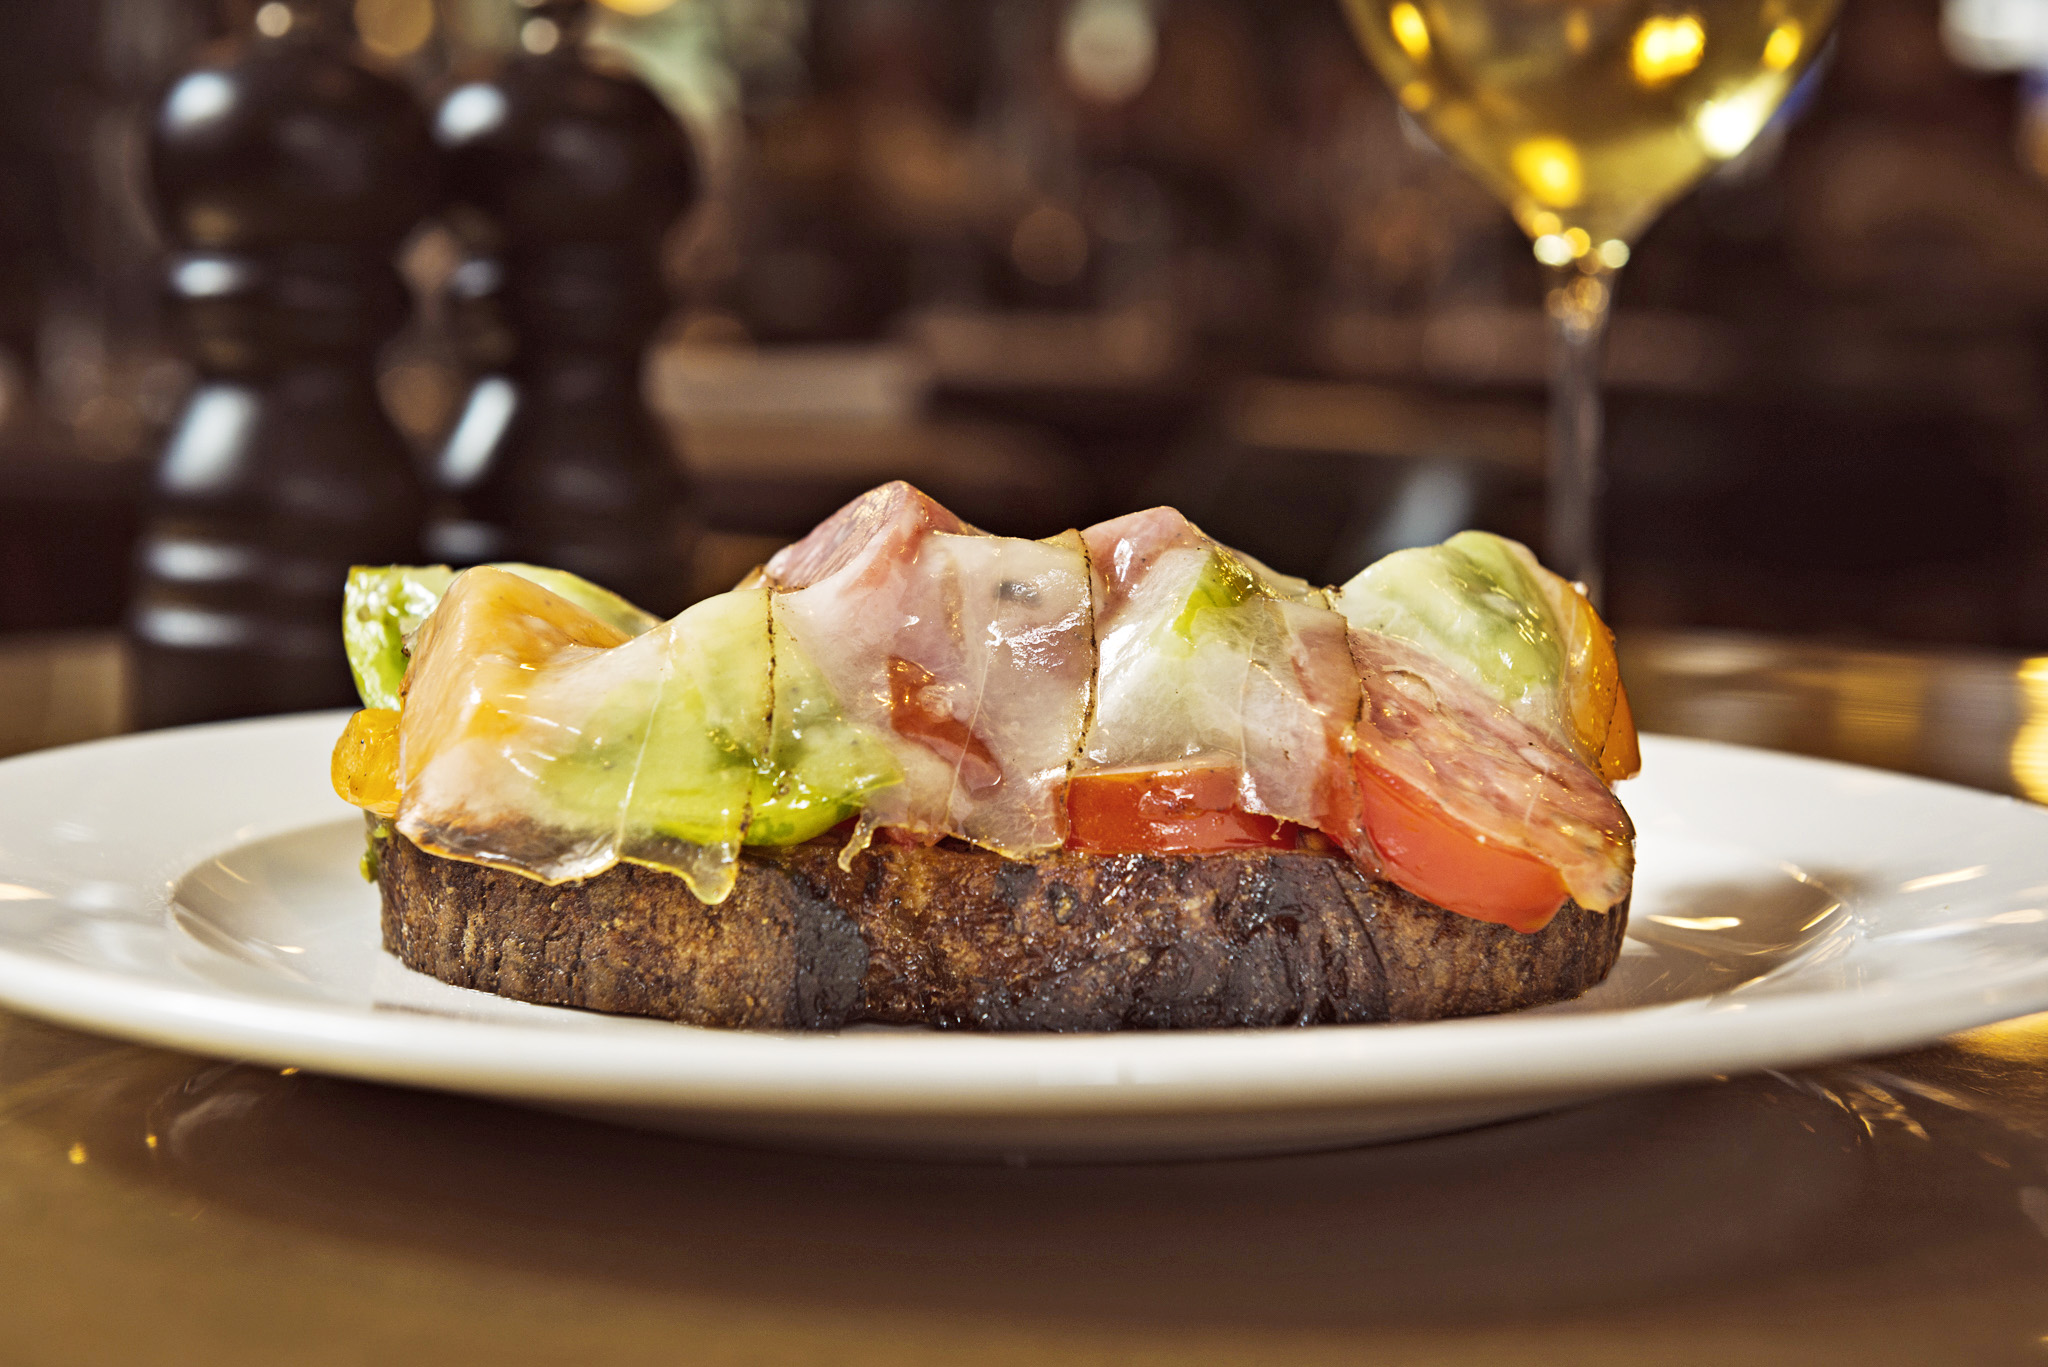 Hawksmoor at Borough Market - Uses local cannon & Cannon to source Cornish Lardo with layers of roasted heritage tomatoes on toast